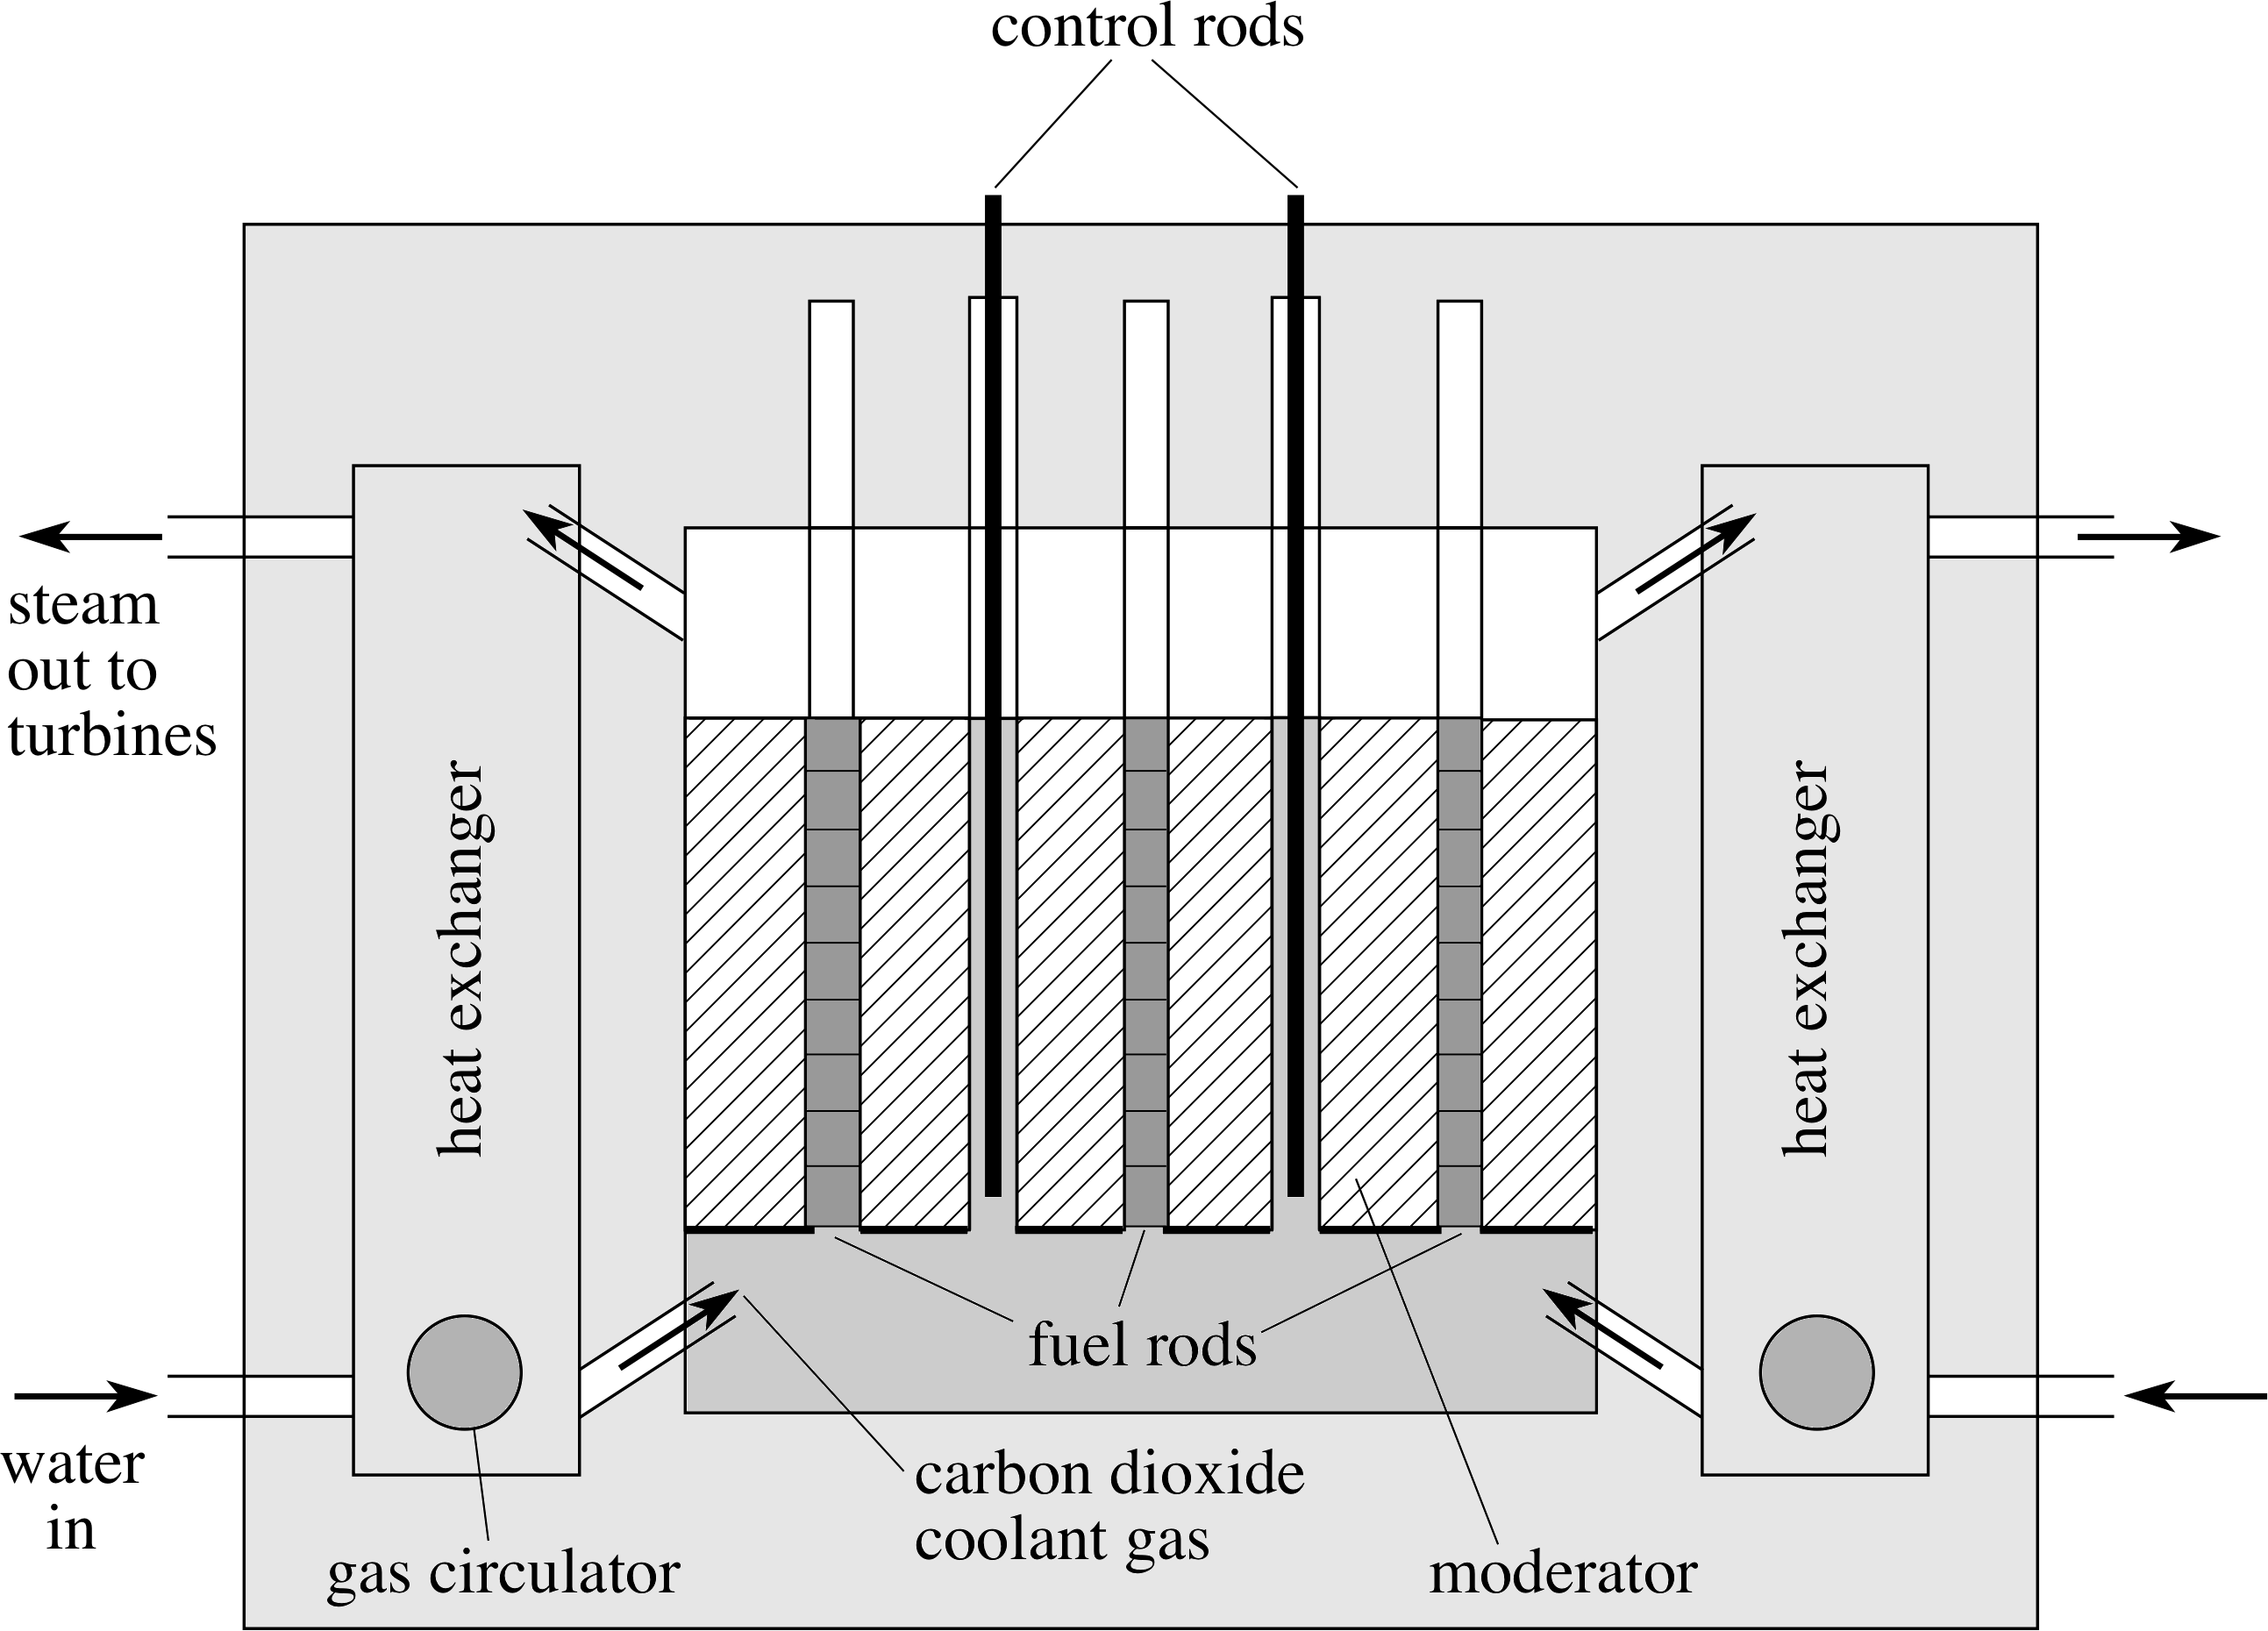 Pplato flap phys 93 nuclear fission and fusion and radiation figure 6 a schematic ccuart Image collections